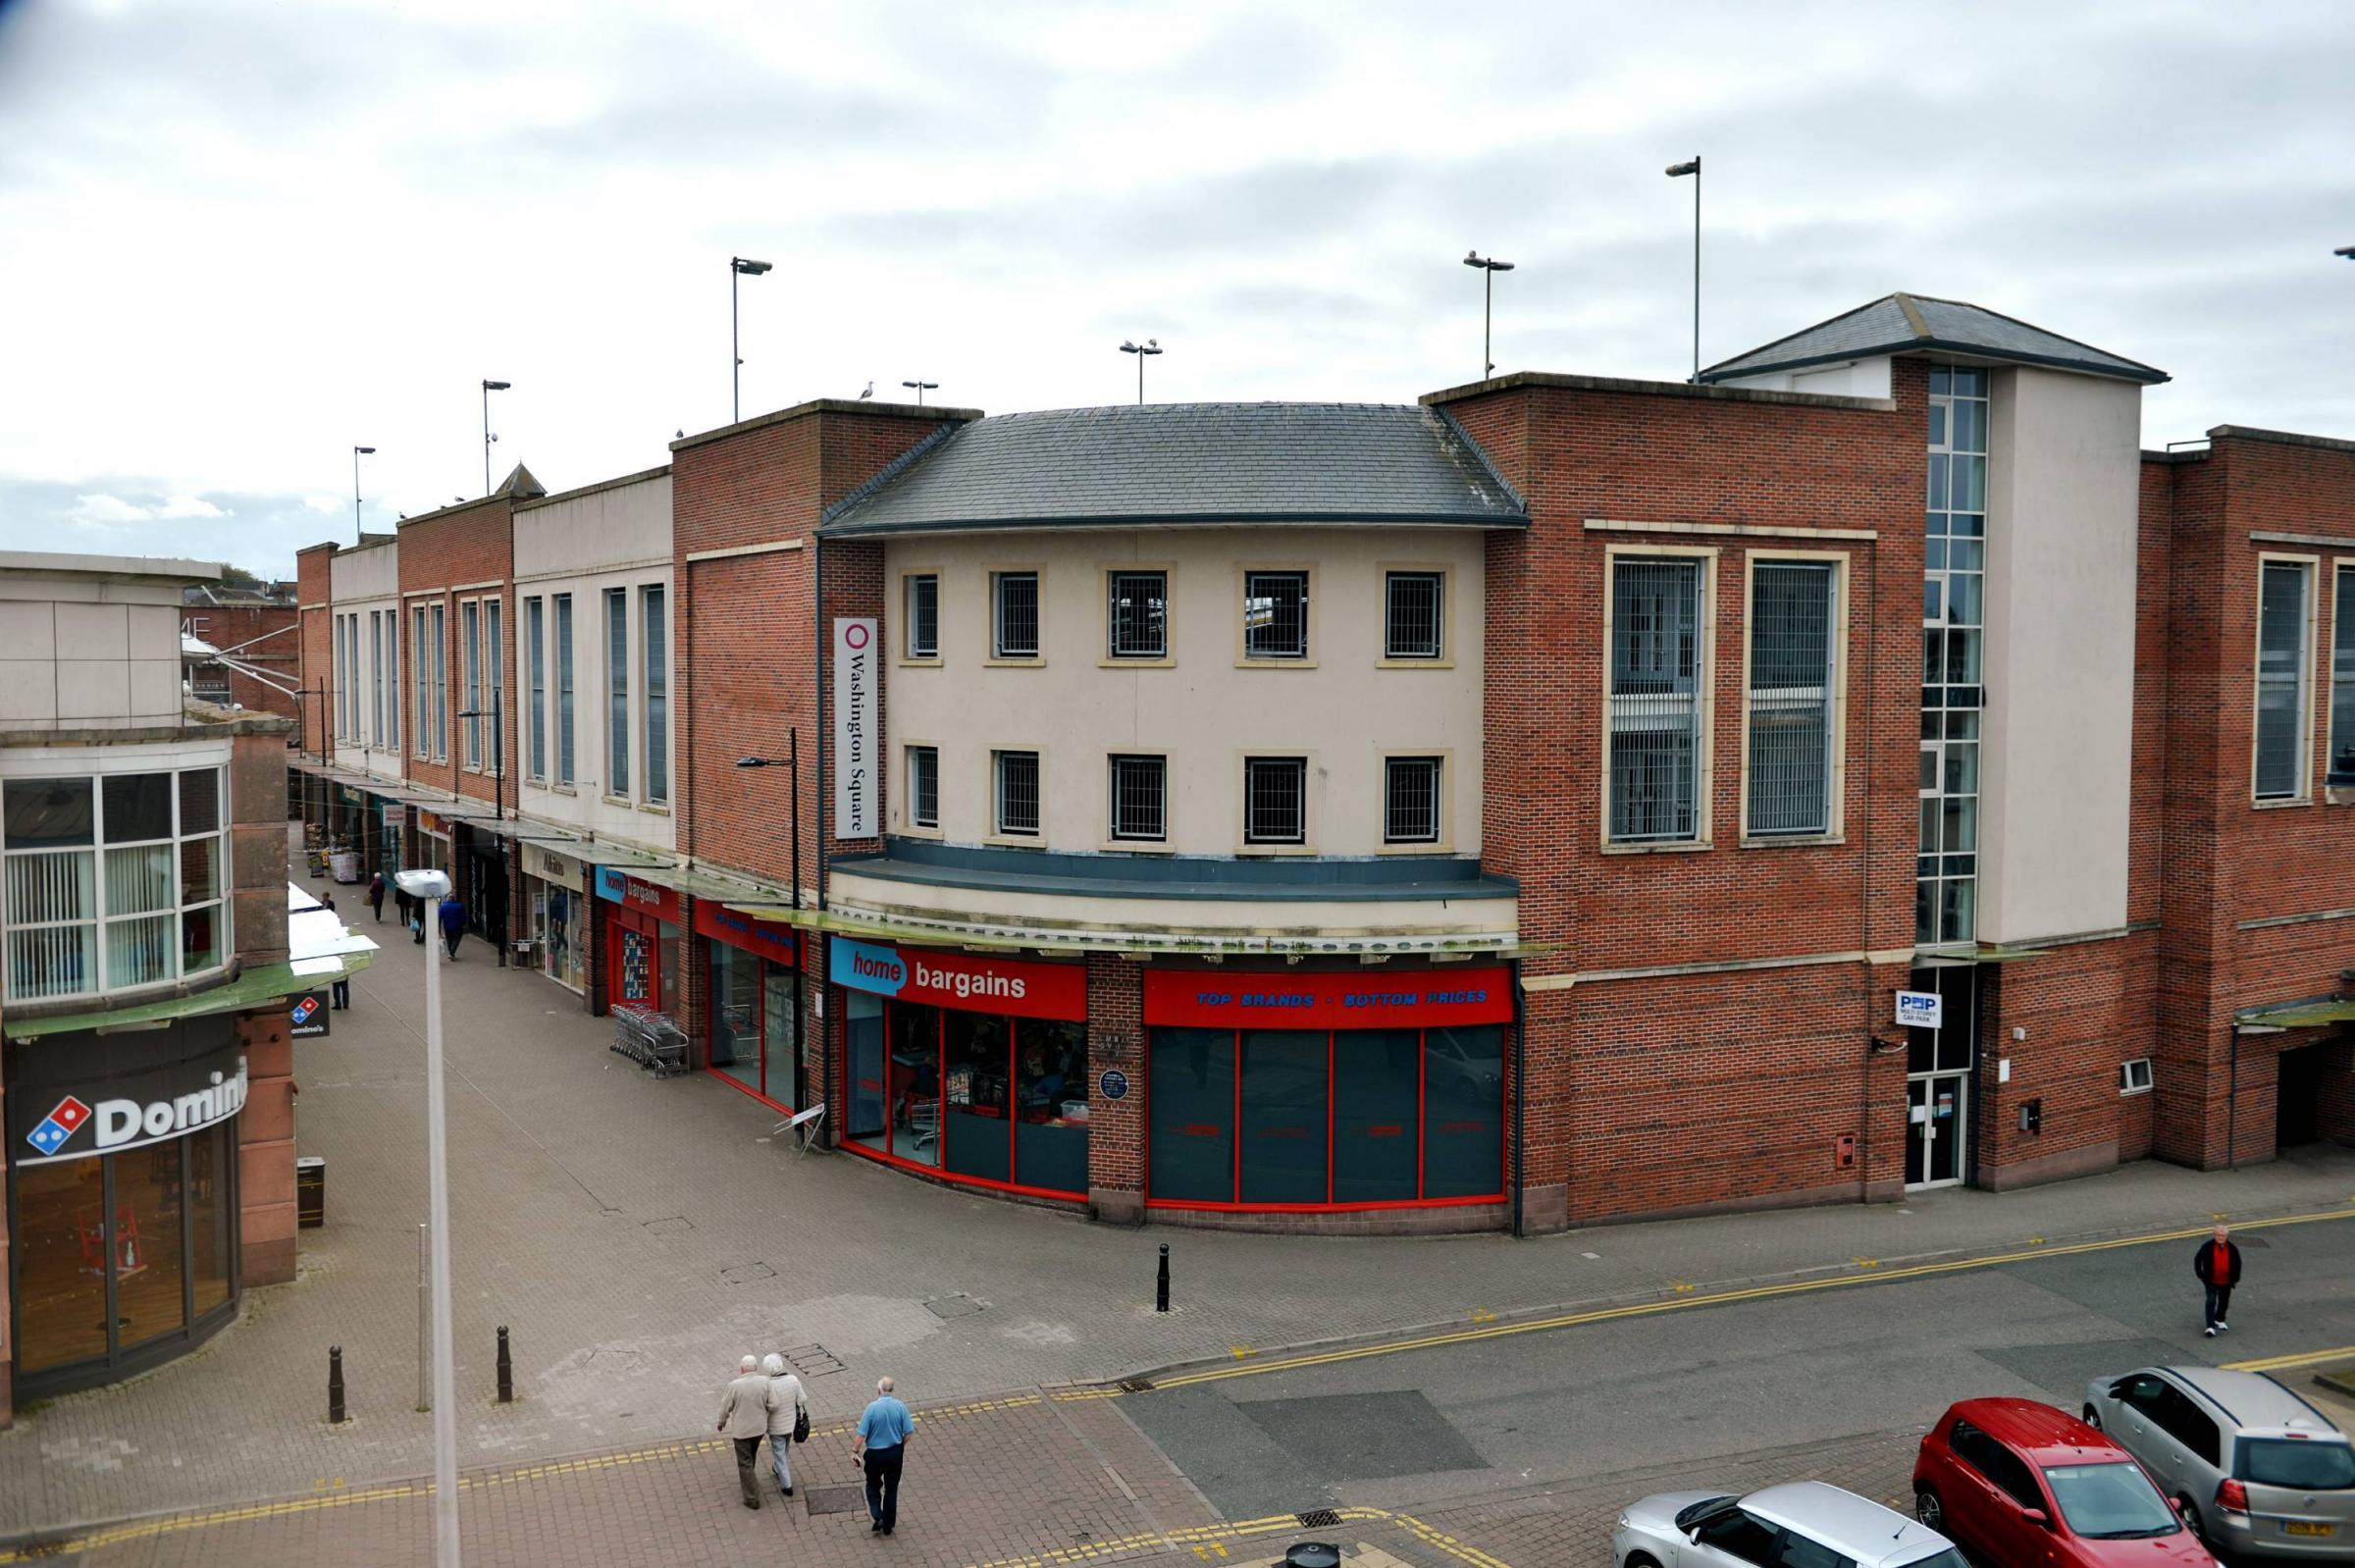 Westview An unusual view Campbell Savours Way, Washington Square, Dominos and Home Bargains in Workington..Pic Tom Kay        Tuesday 15th May 2018  50090182T002.JPG.